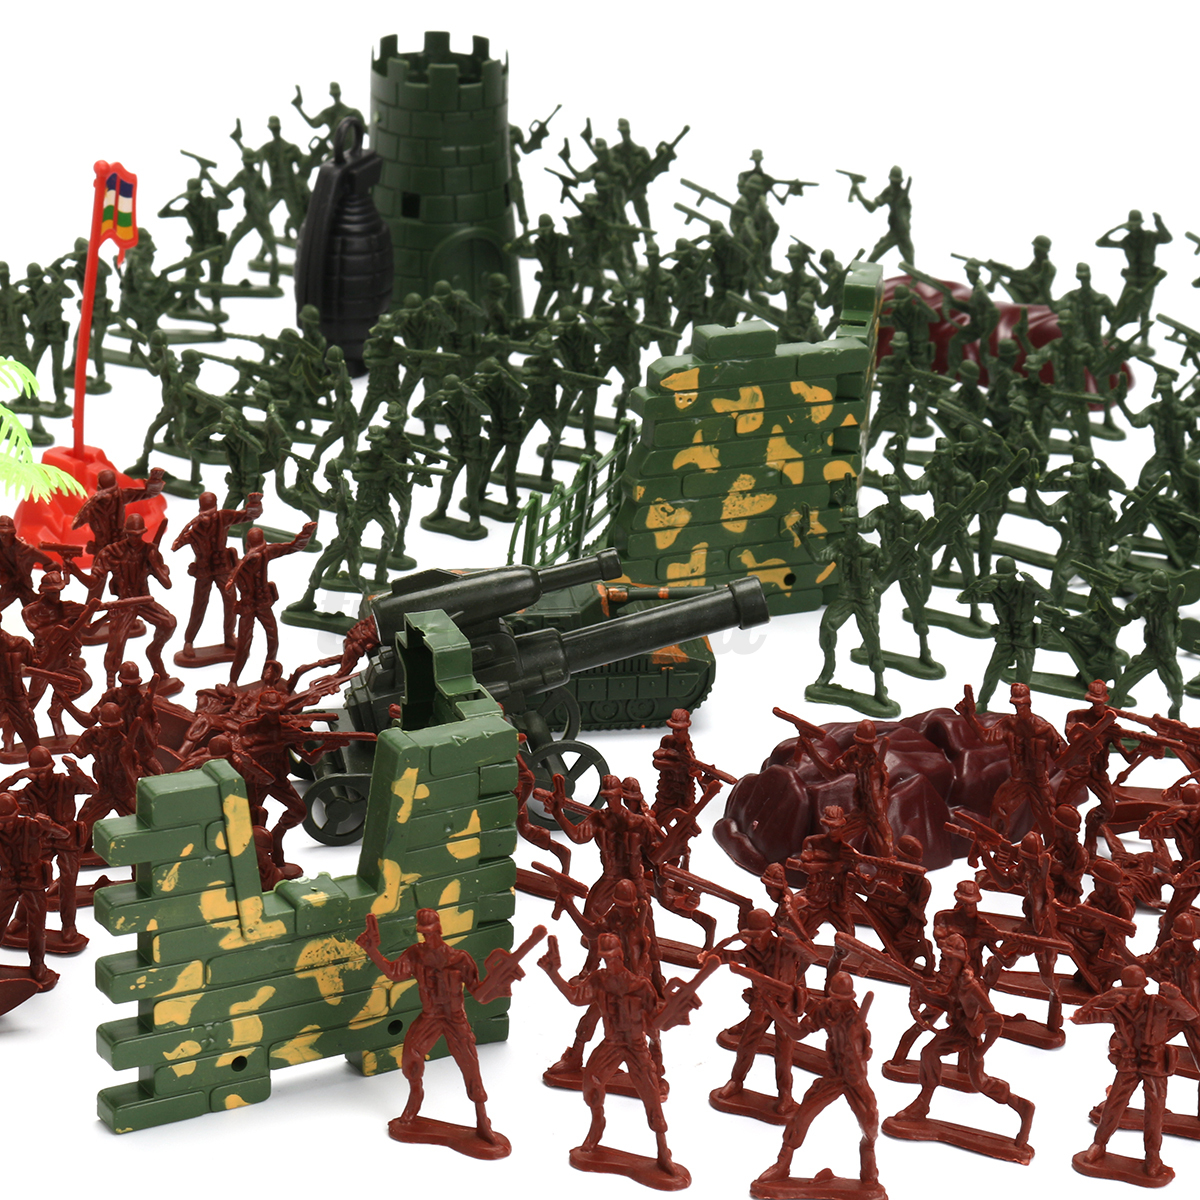 238PCS-Military-Plastic-Soldiers-Army-Men-Figures-Tanks-Accessories-Play-Set-Toy thumbnail 2